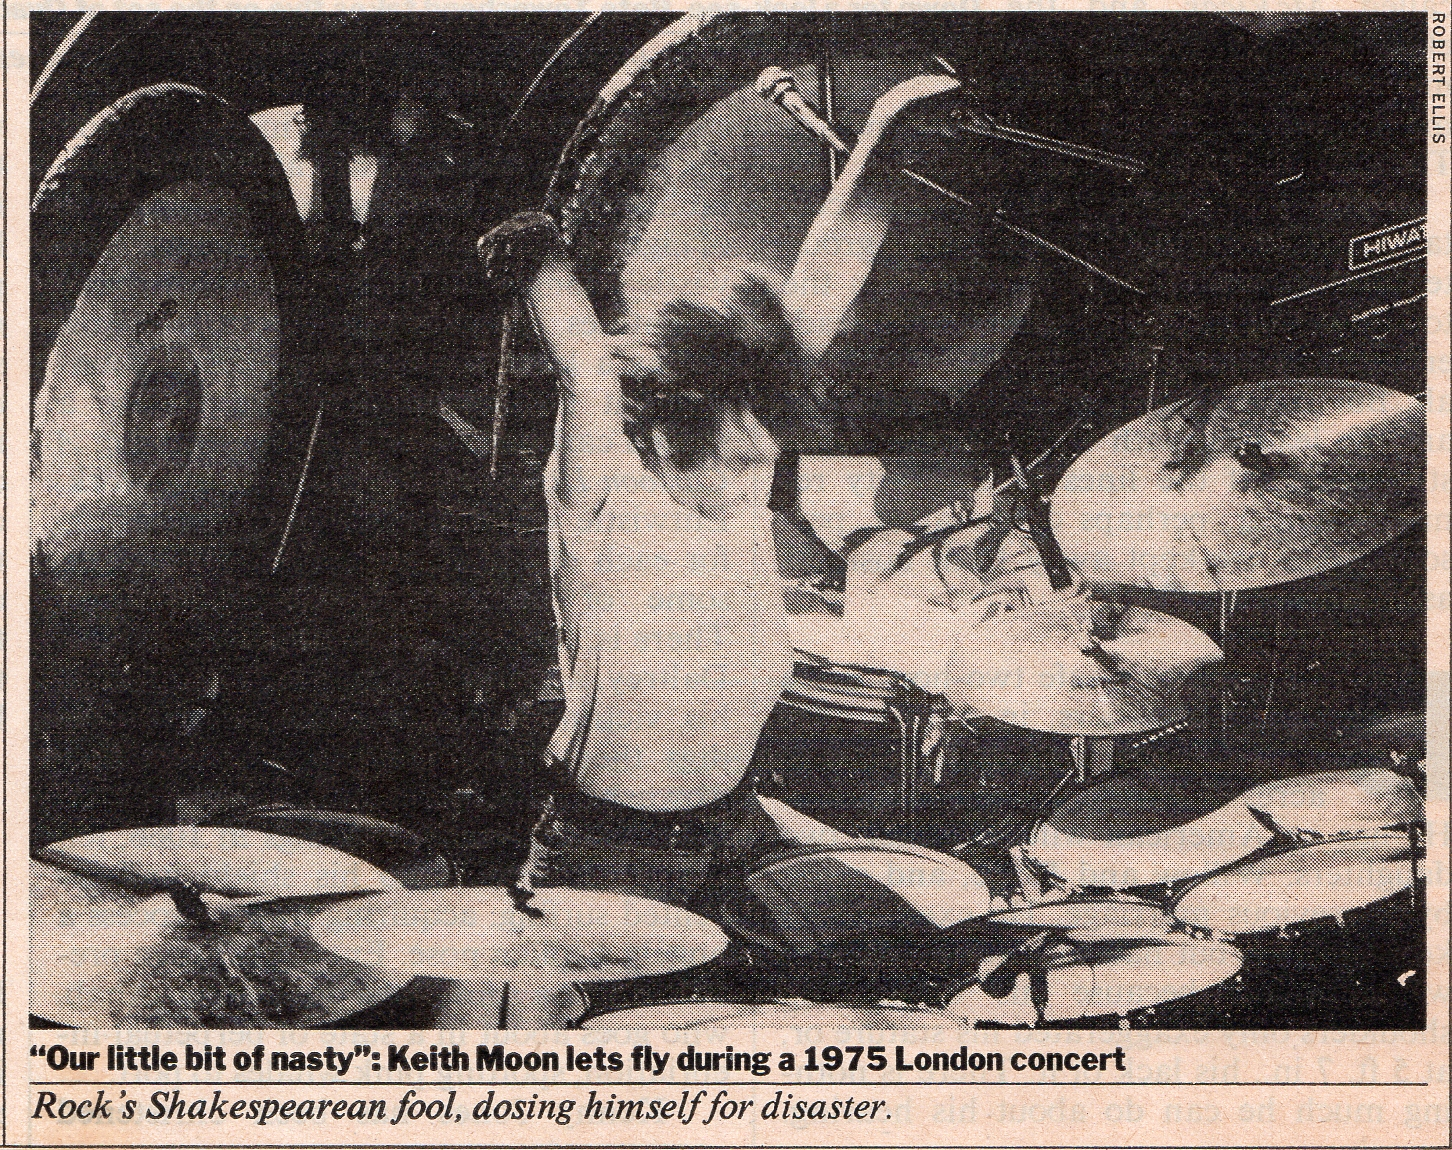 [Image: keithmoon%20lets%20fly.jpg]